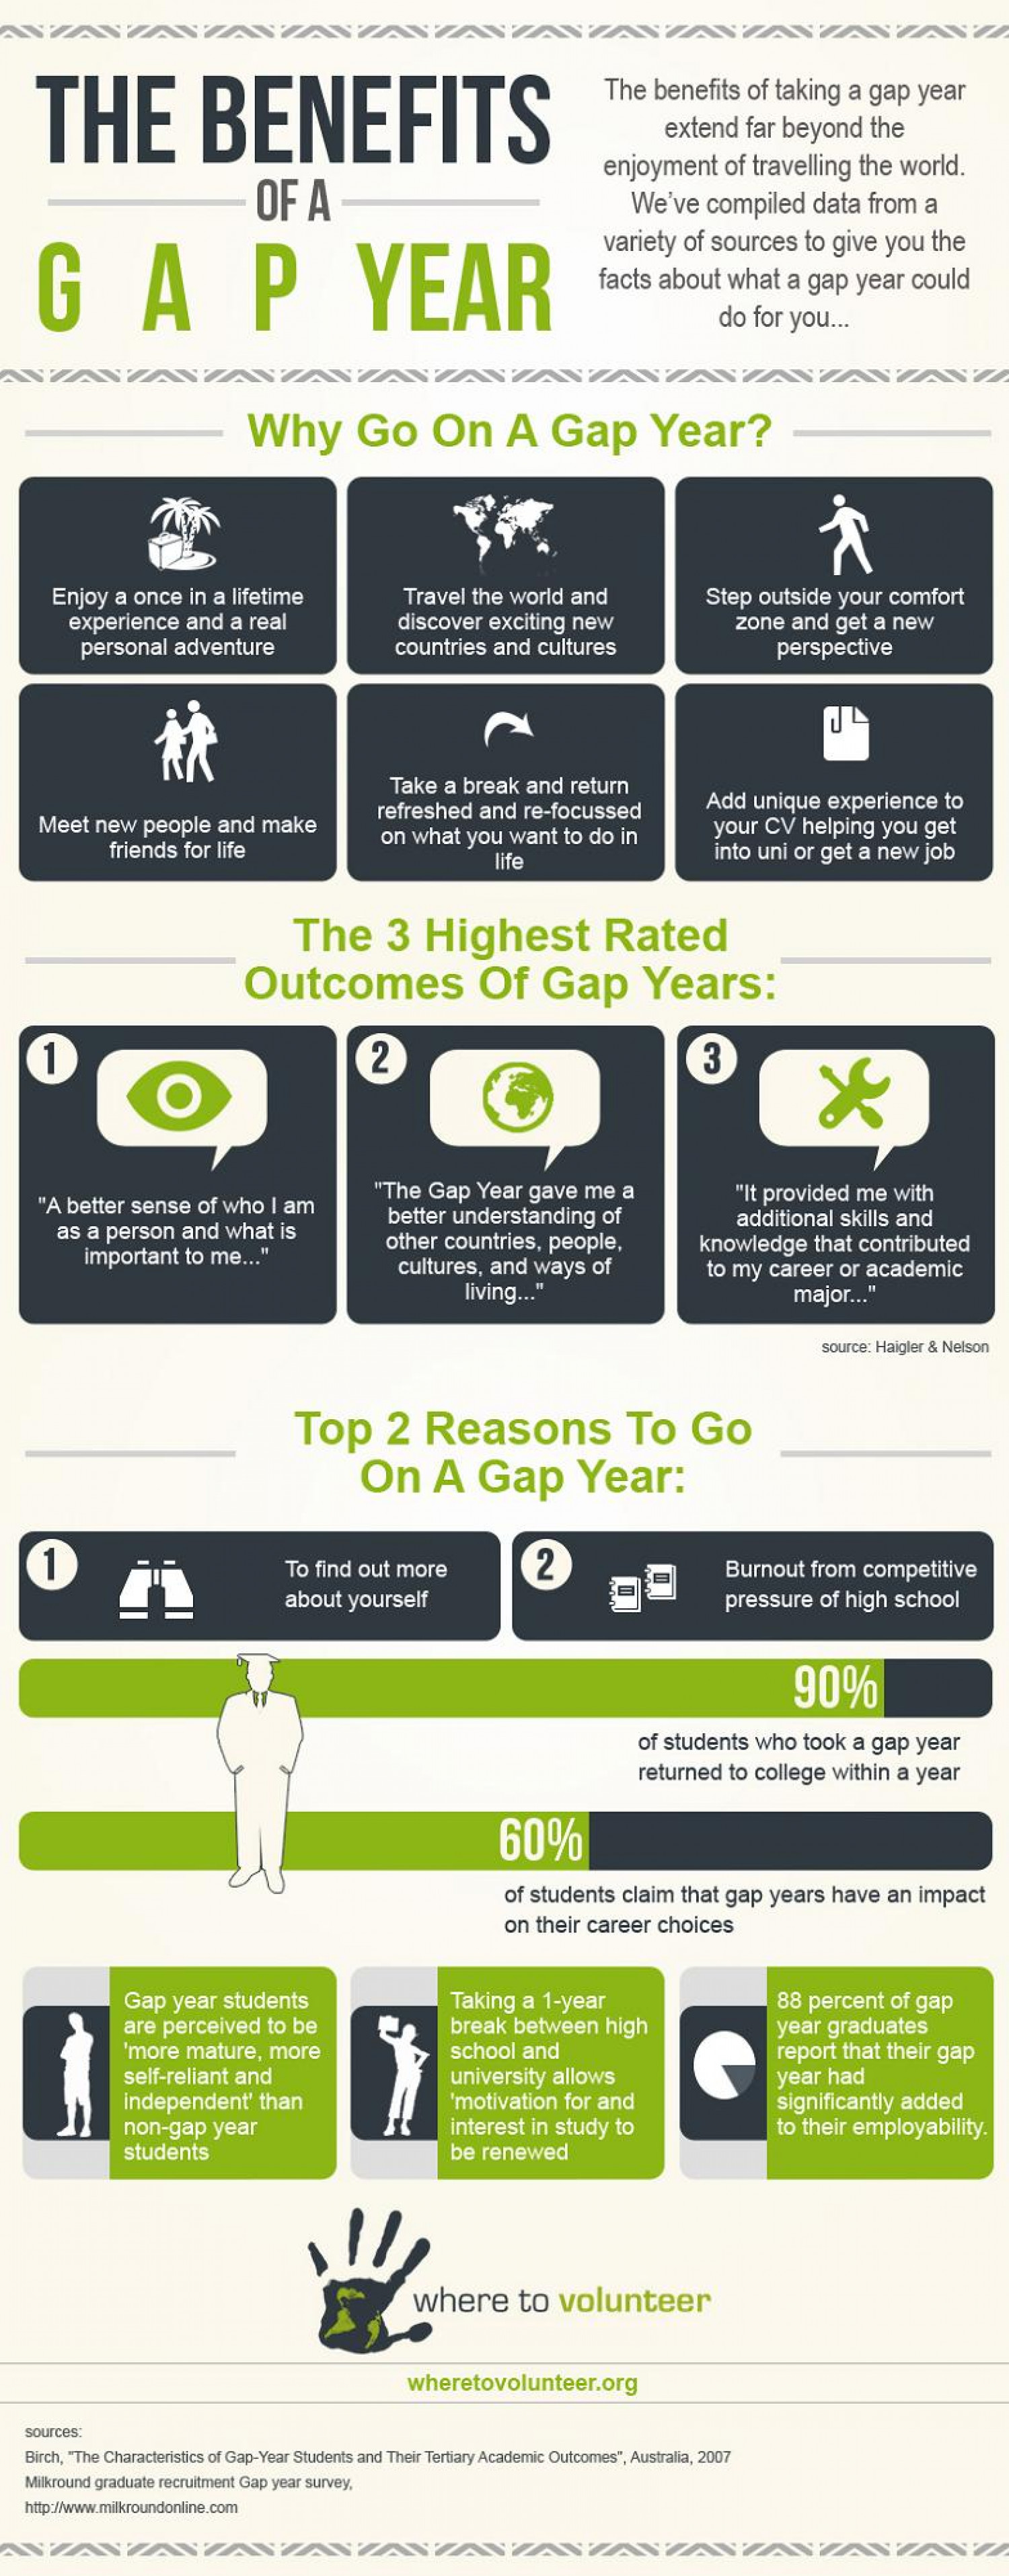 The Benefits of a Gap Year Infographic